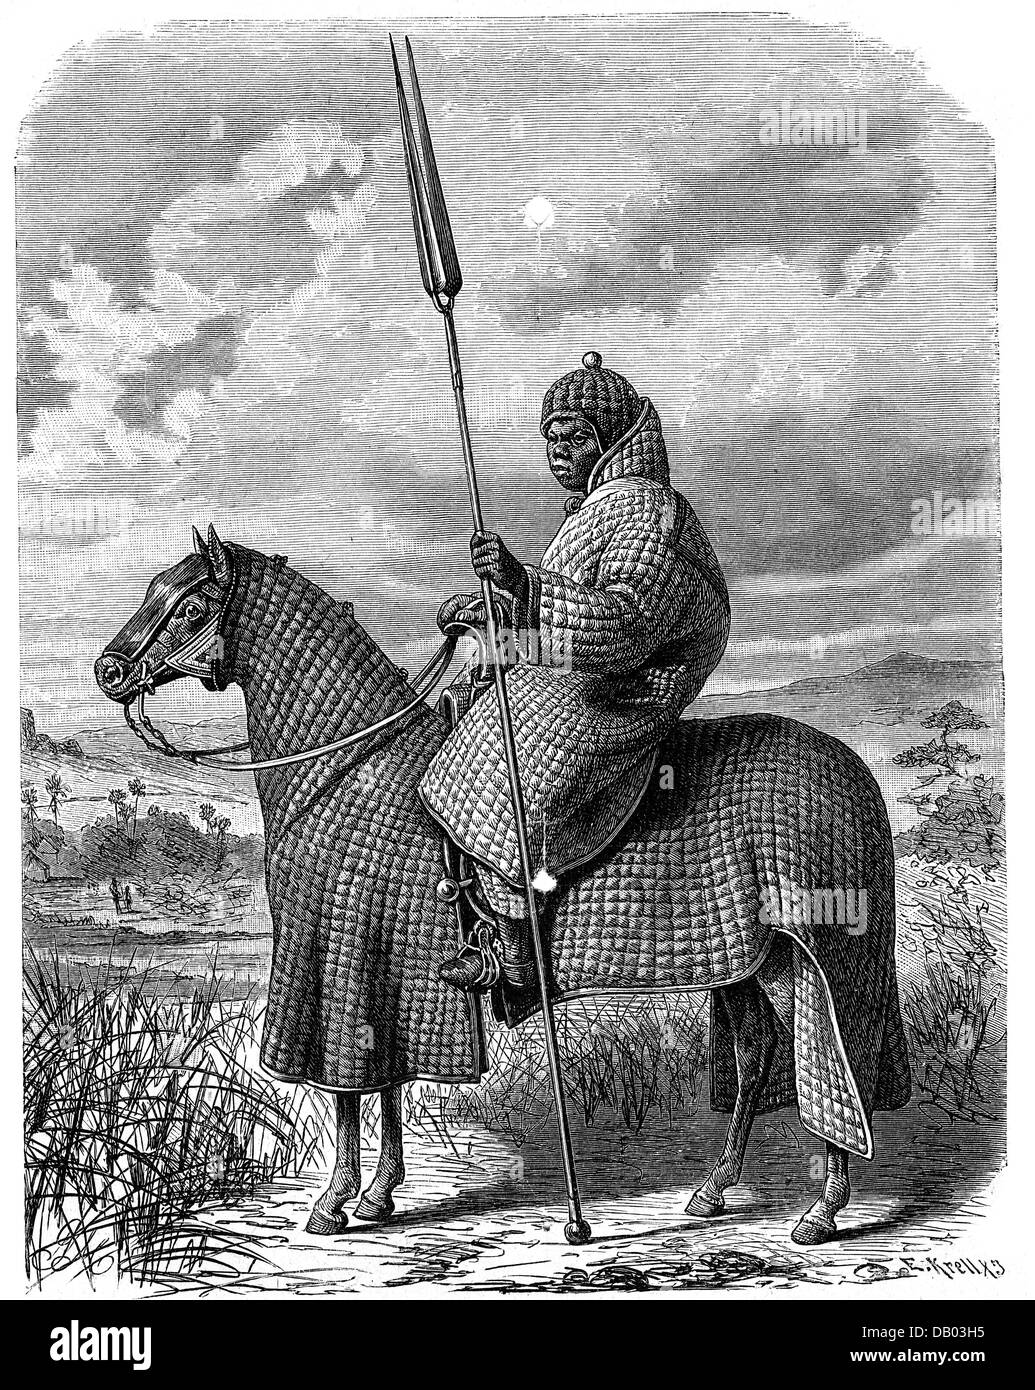 military, Africa, Chad, Kingdom of Baguirmi, mounted warrior, wood engraving by E. Krell, 19th century, Central - Stock Image